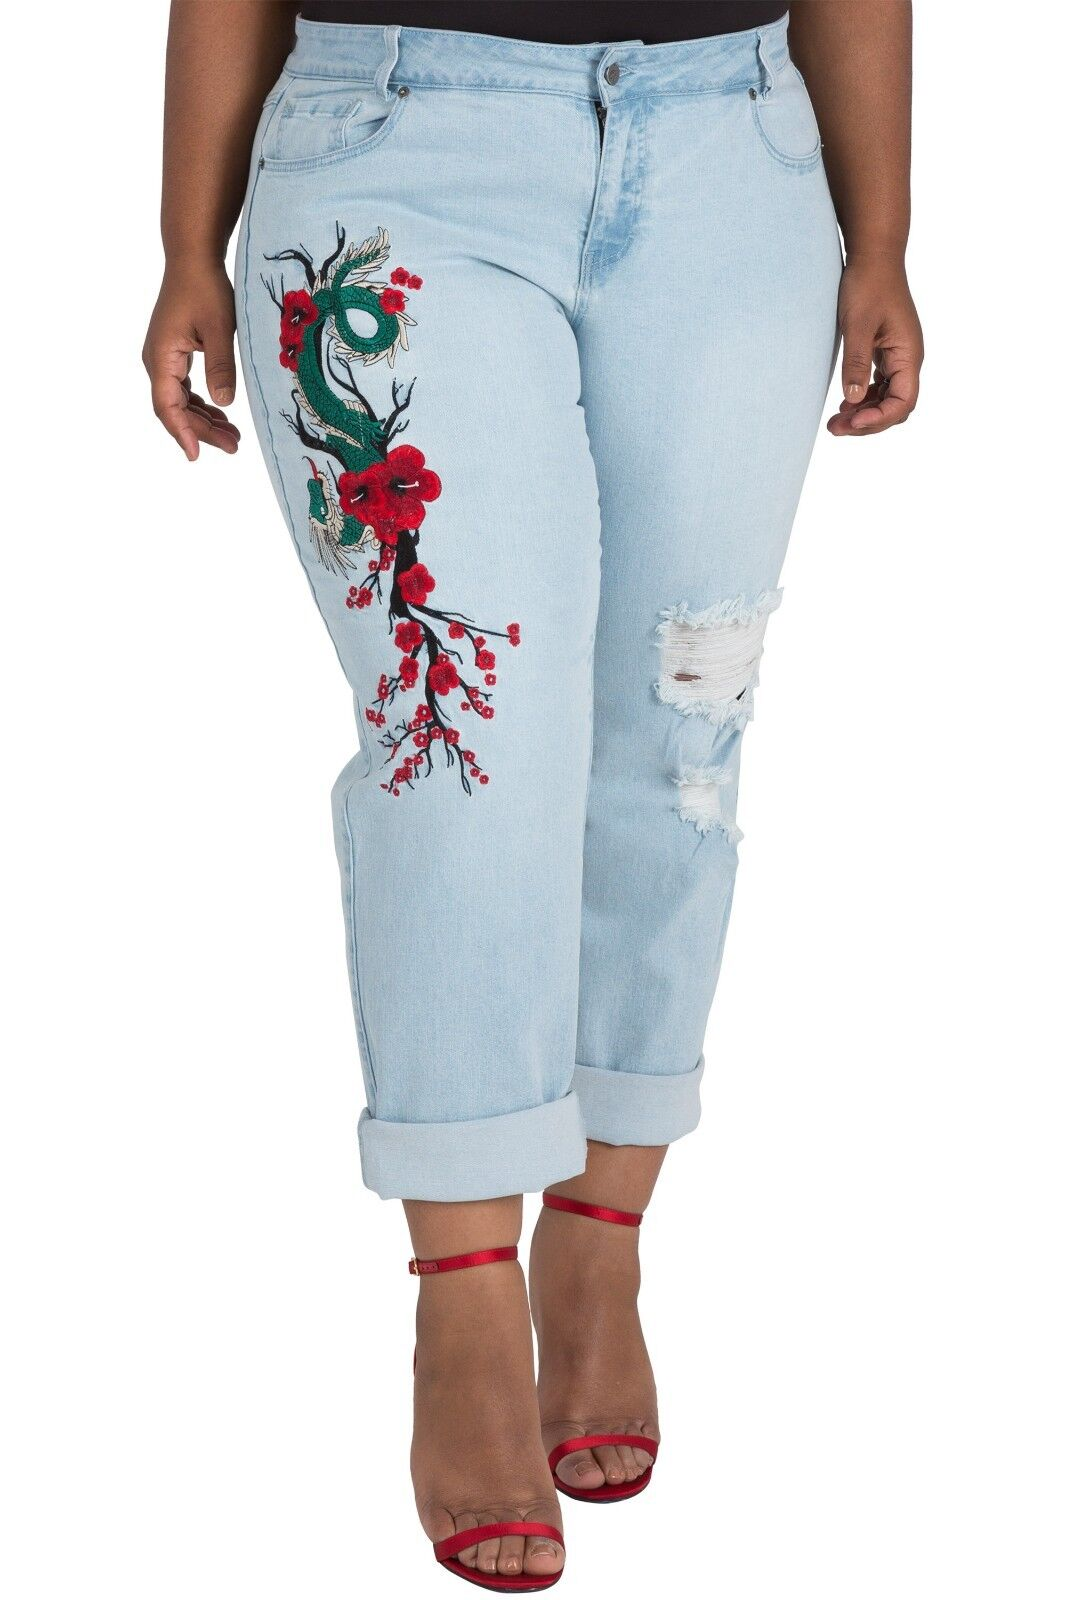 Poetic Justice Plus Size Women's Curvy Fit Light Wash Dragon Embroidered Jeans